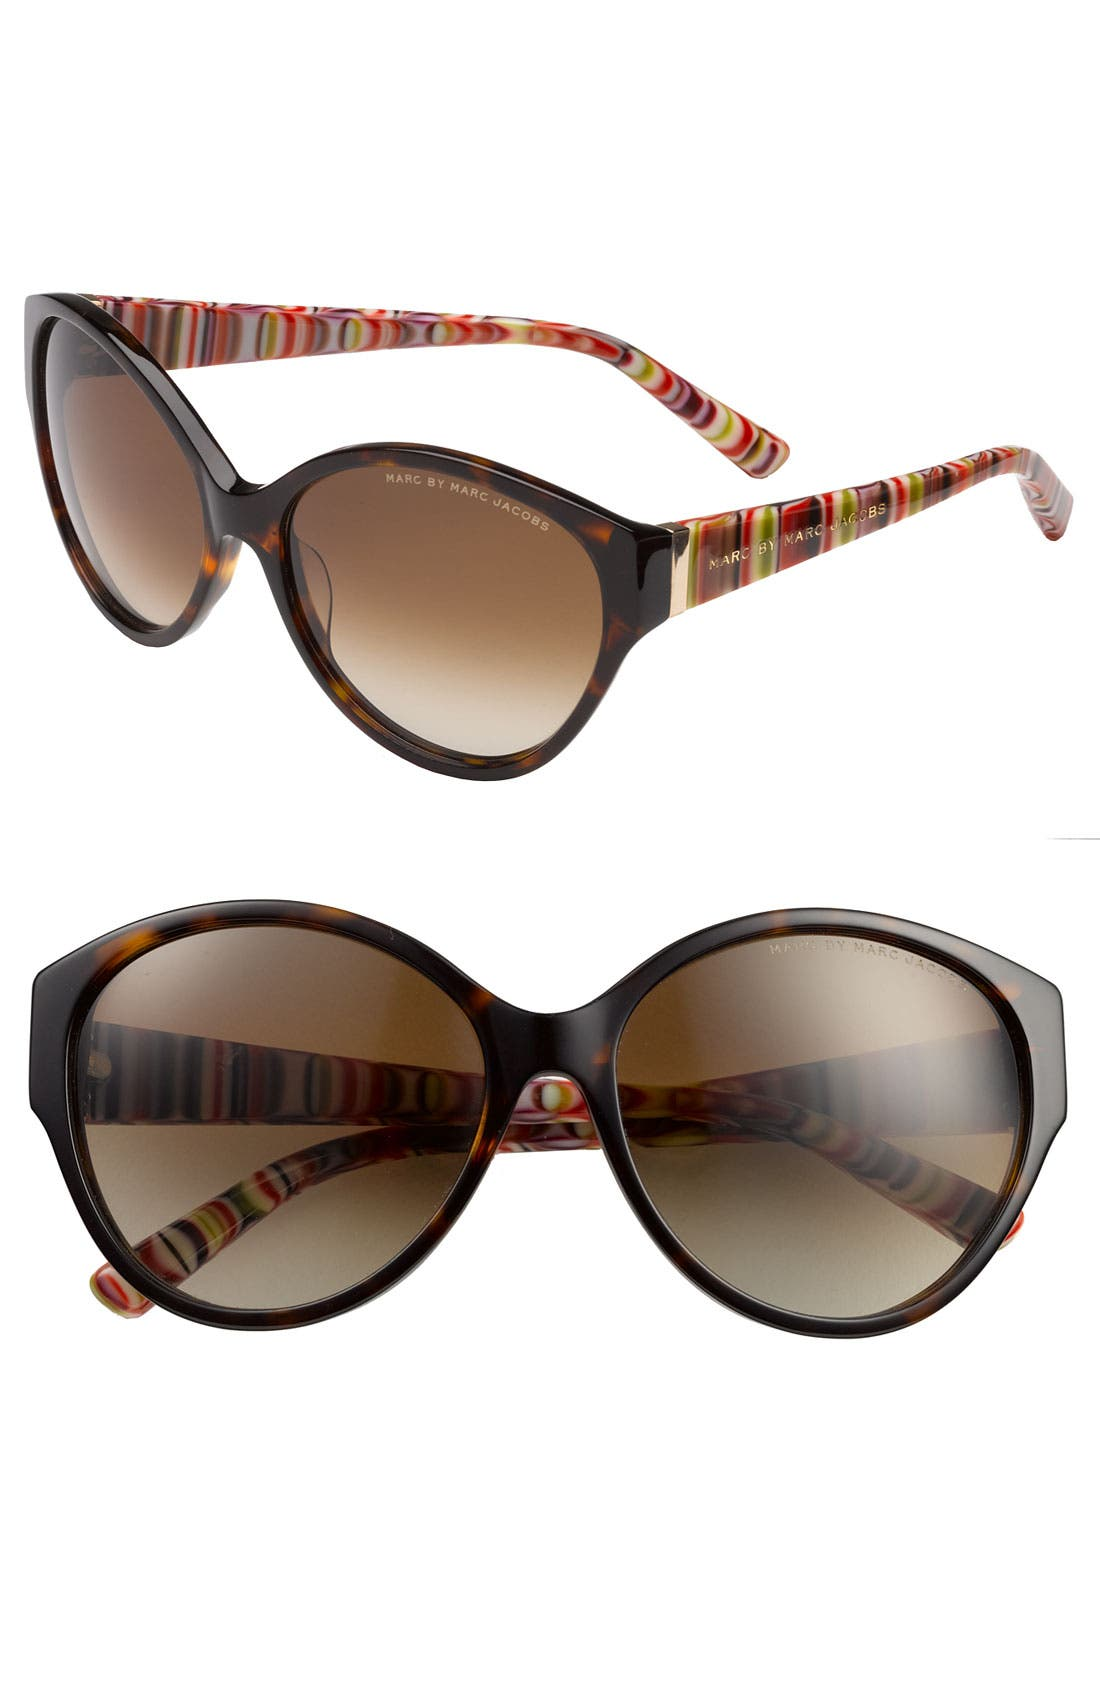 Main Image - MARC BY MARC JACOBS Stripe Cat's Eye Sunglasses (Nordstrom Exclusive)